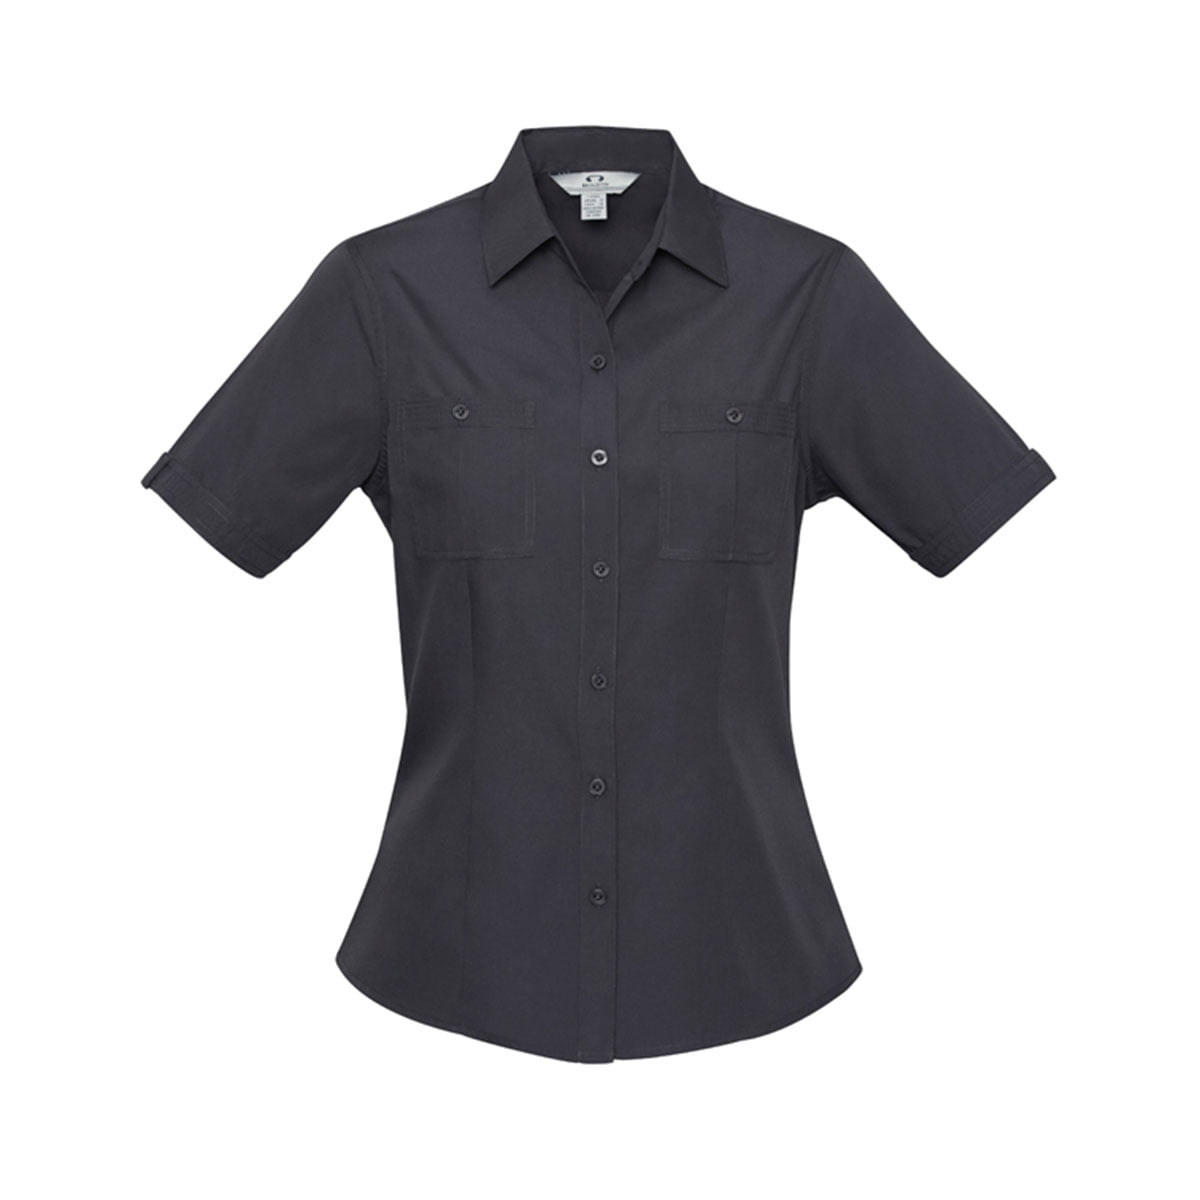 Ladies Bondi Short Sleeve Shirt-Charcoal